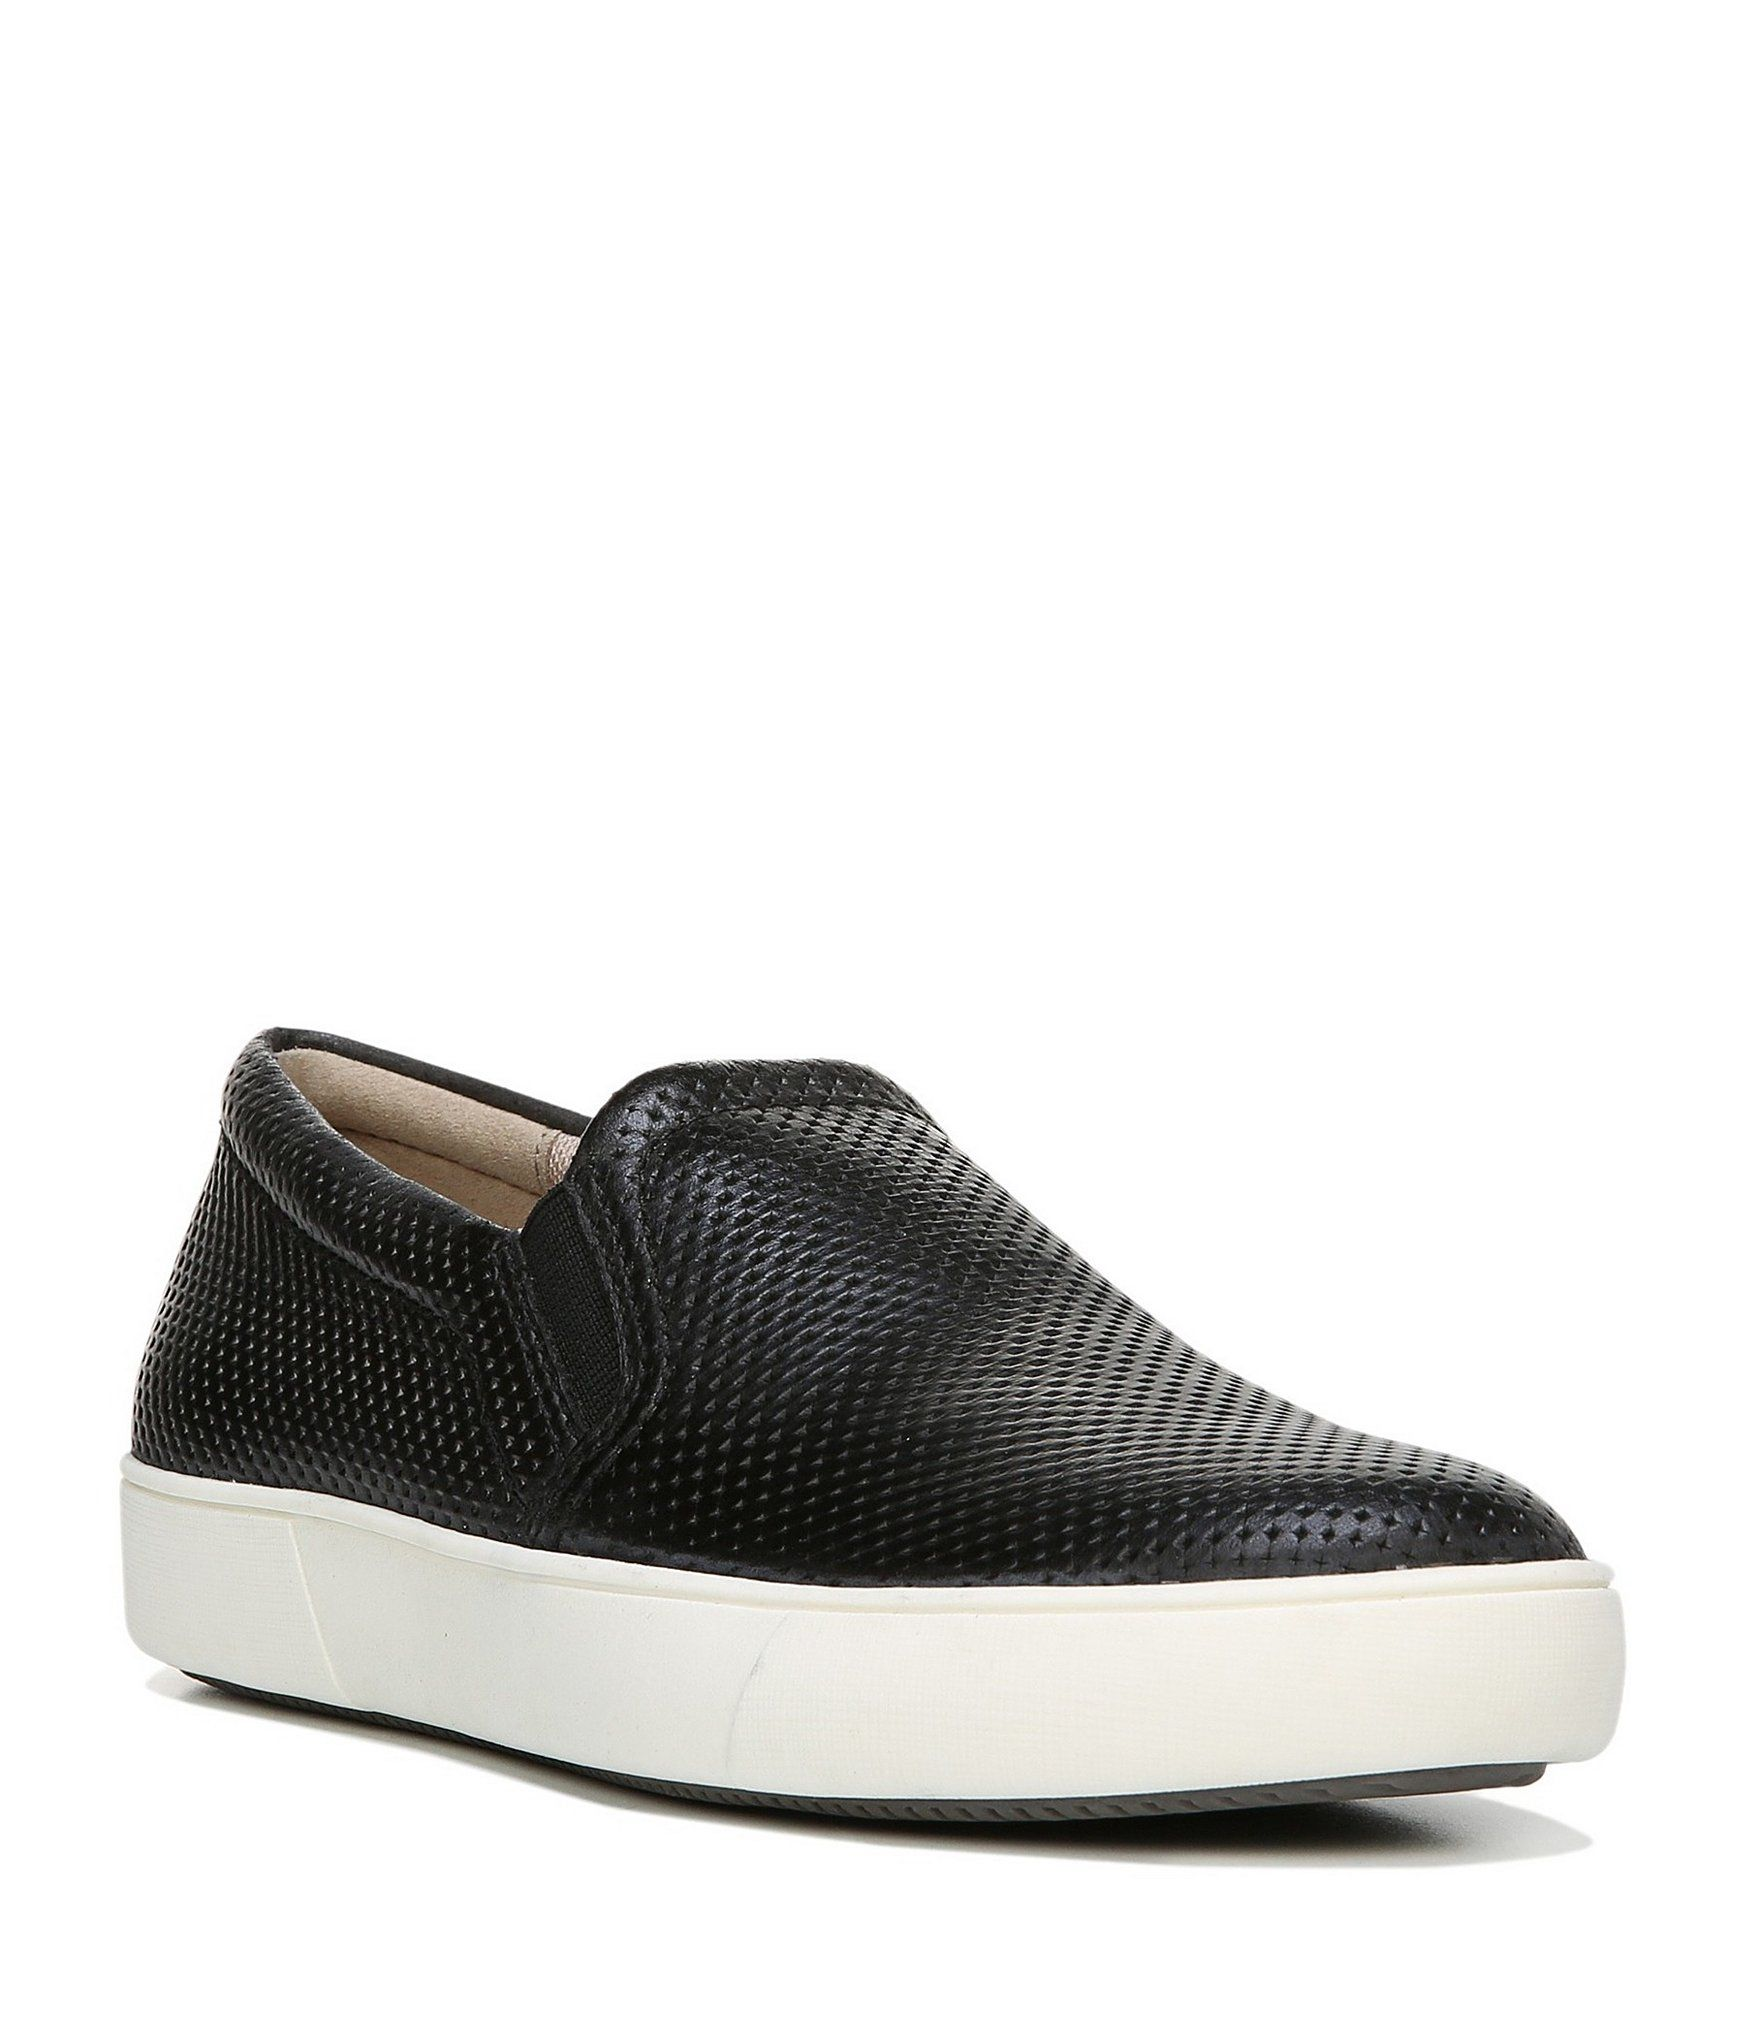 877b4883f21 Naturalizer Marianne Perforated Leather Sneakers  Dillards